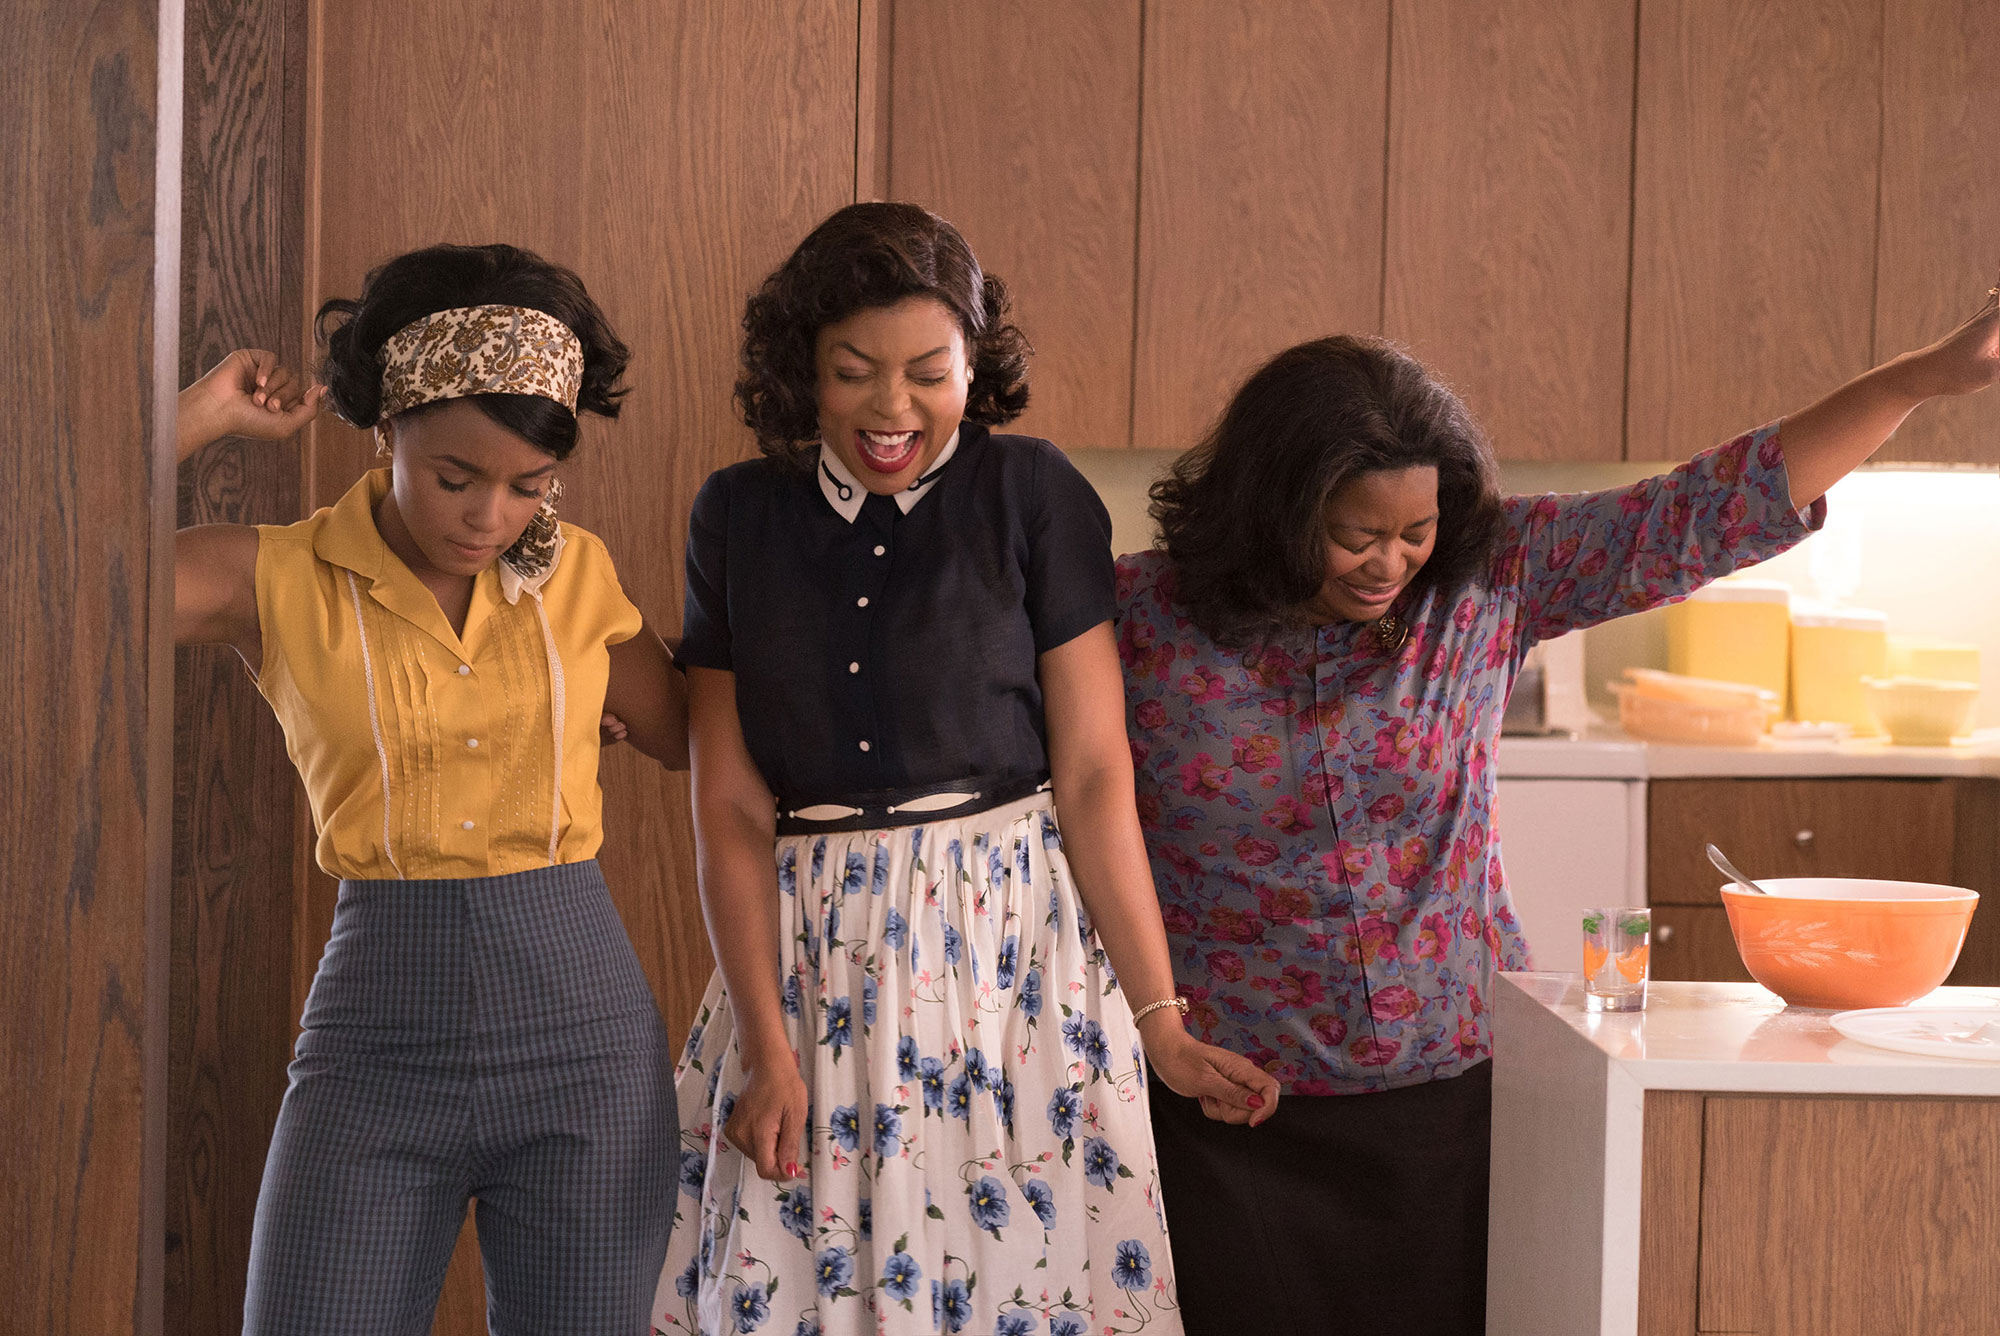 PEOPLE Review: Hidden Figures Turns History into Smart, Inspiring Entertainment